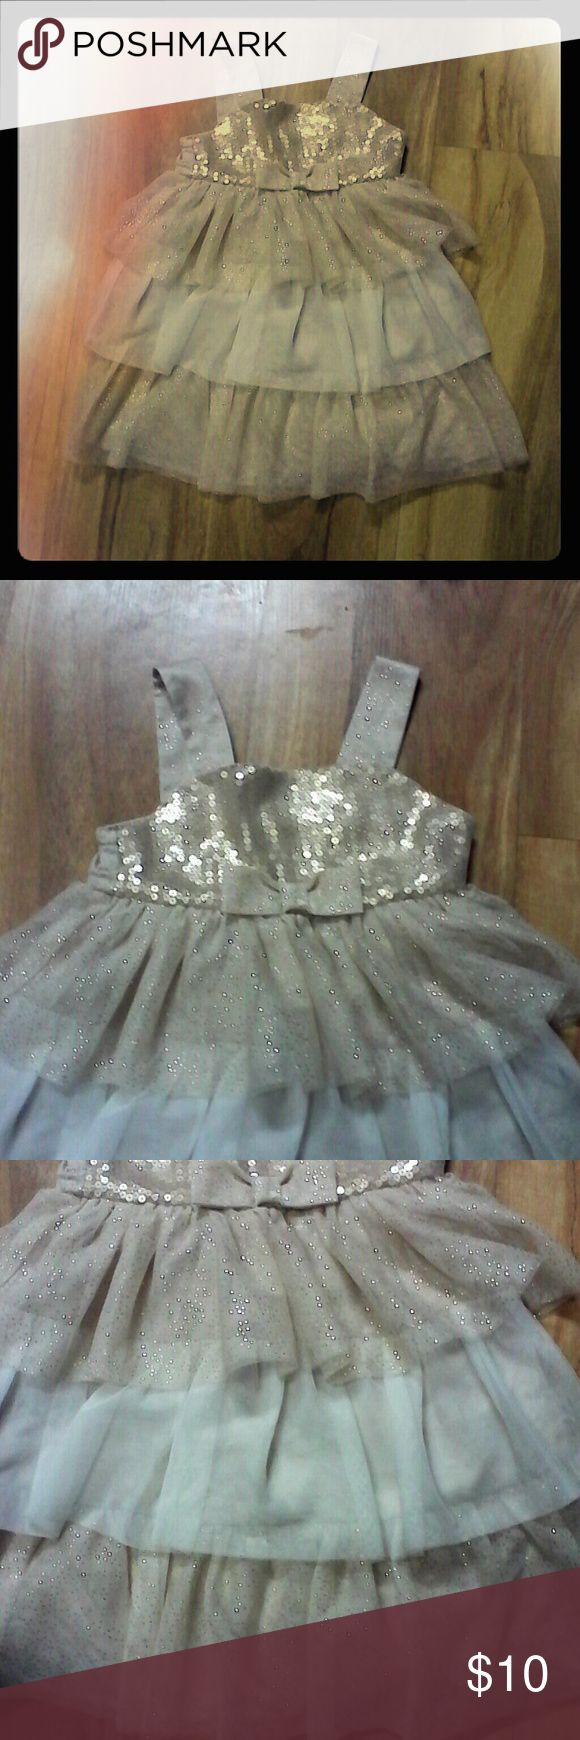 Cherokee sparkle dress sz 4T Cherokee gold and cream sparkle dress sz 4T. Layered tulle material. Sequin top with bow. Cherokee Dresses Formal